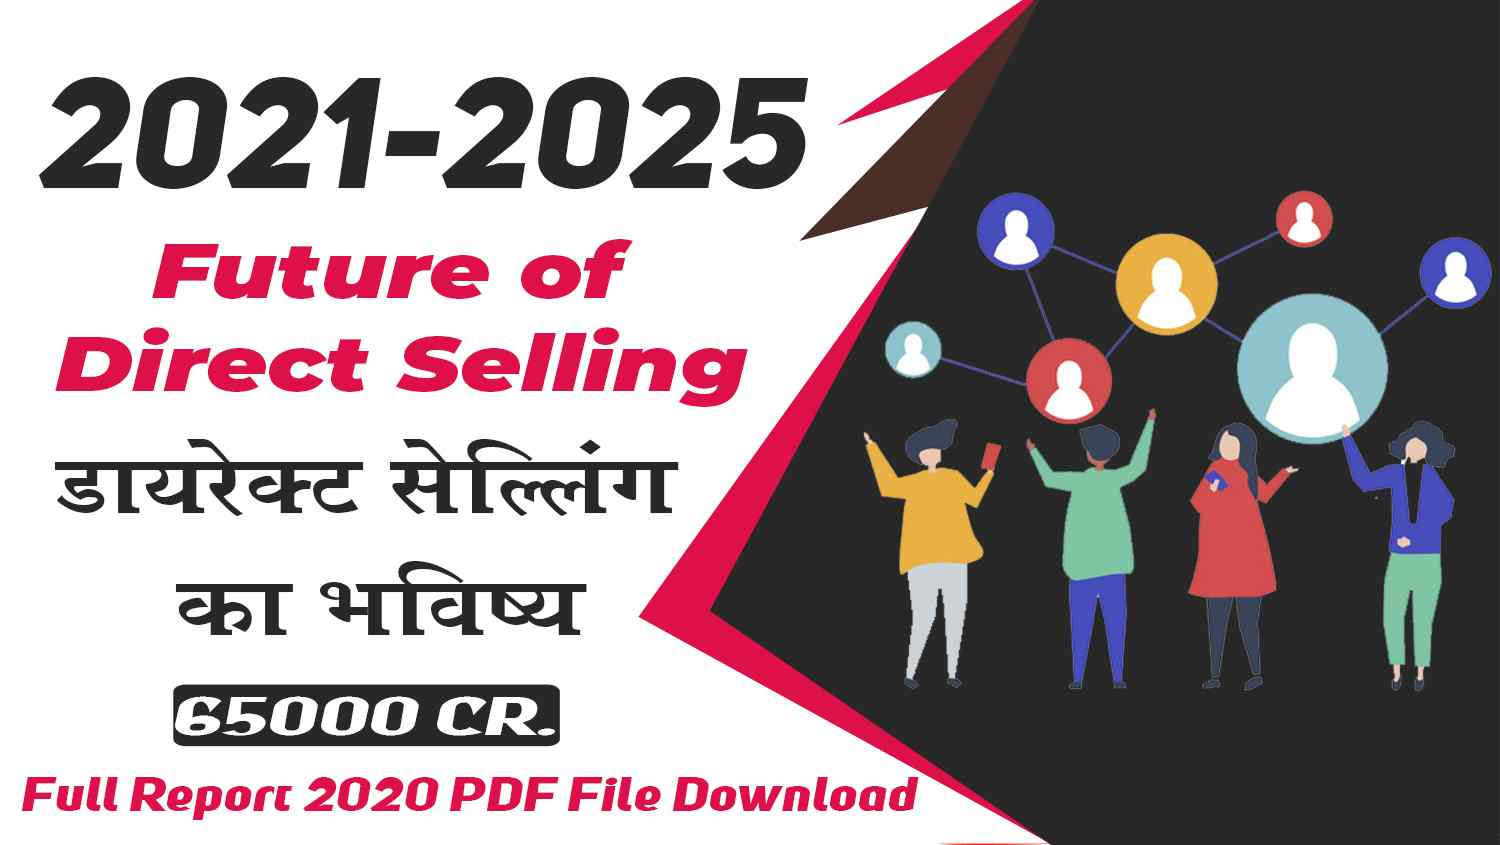 Future of Direct Selling in India 2021